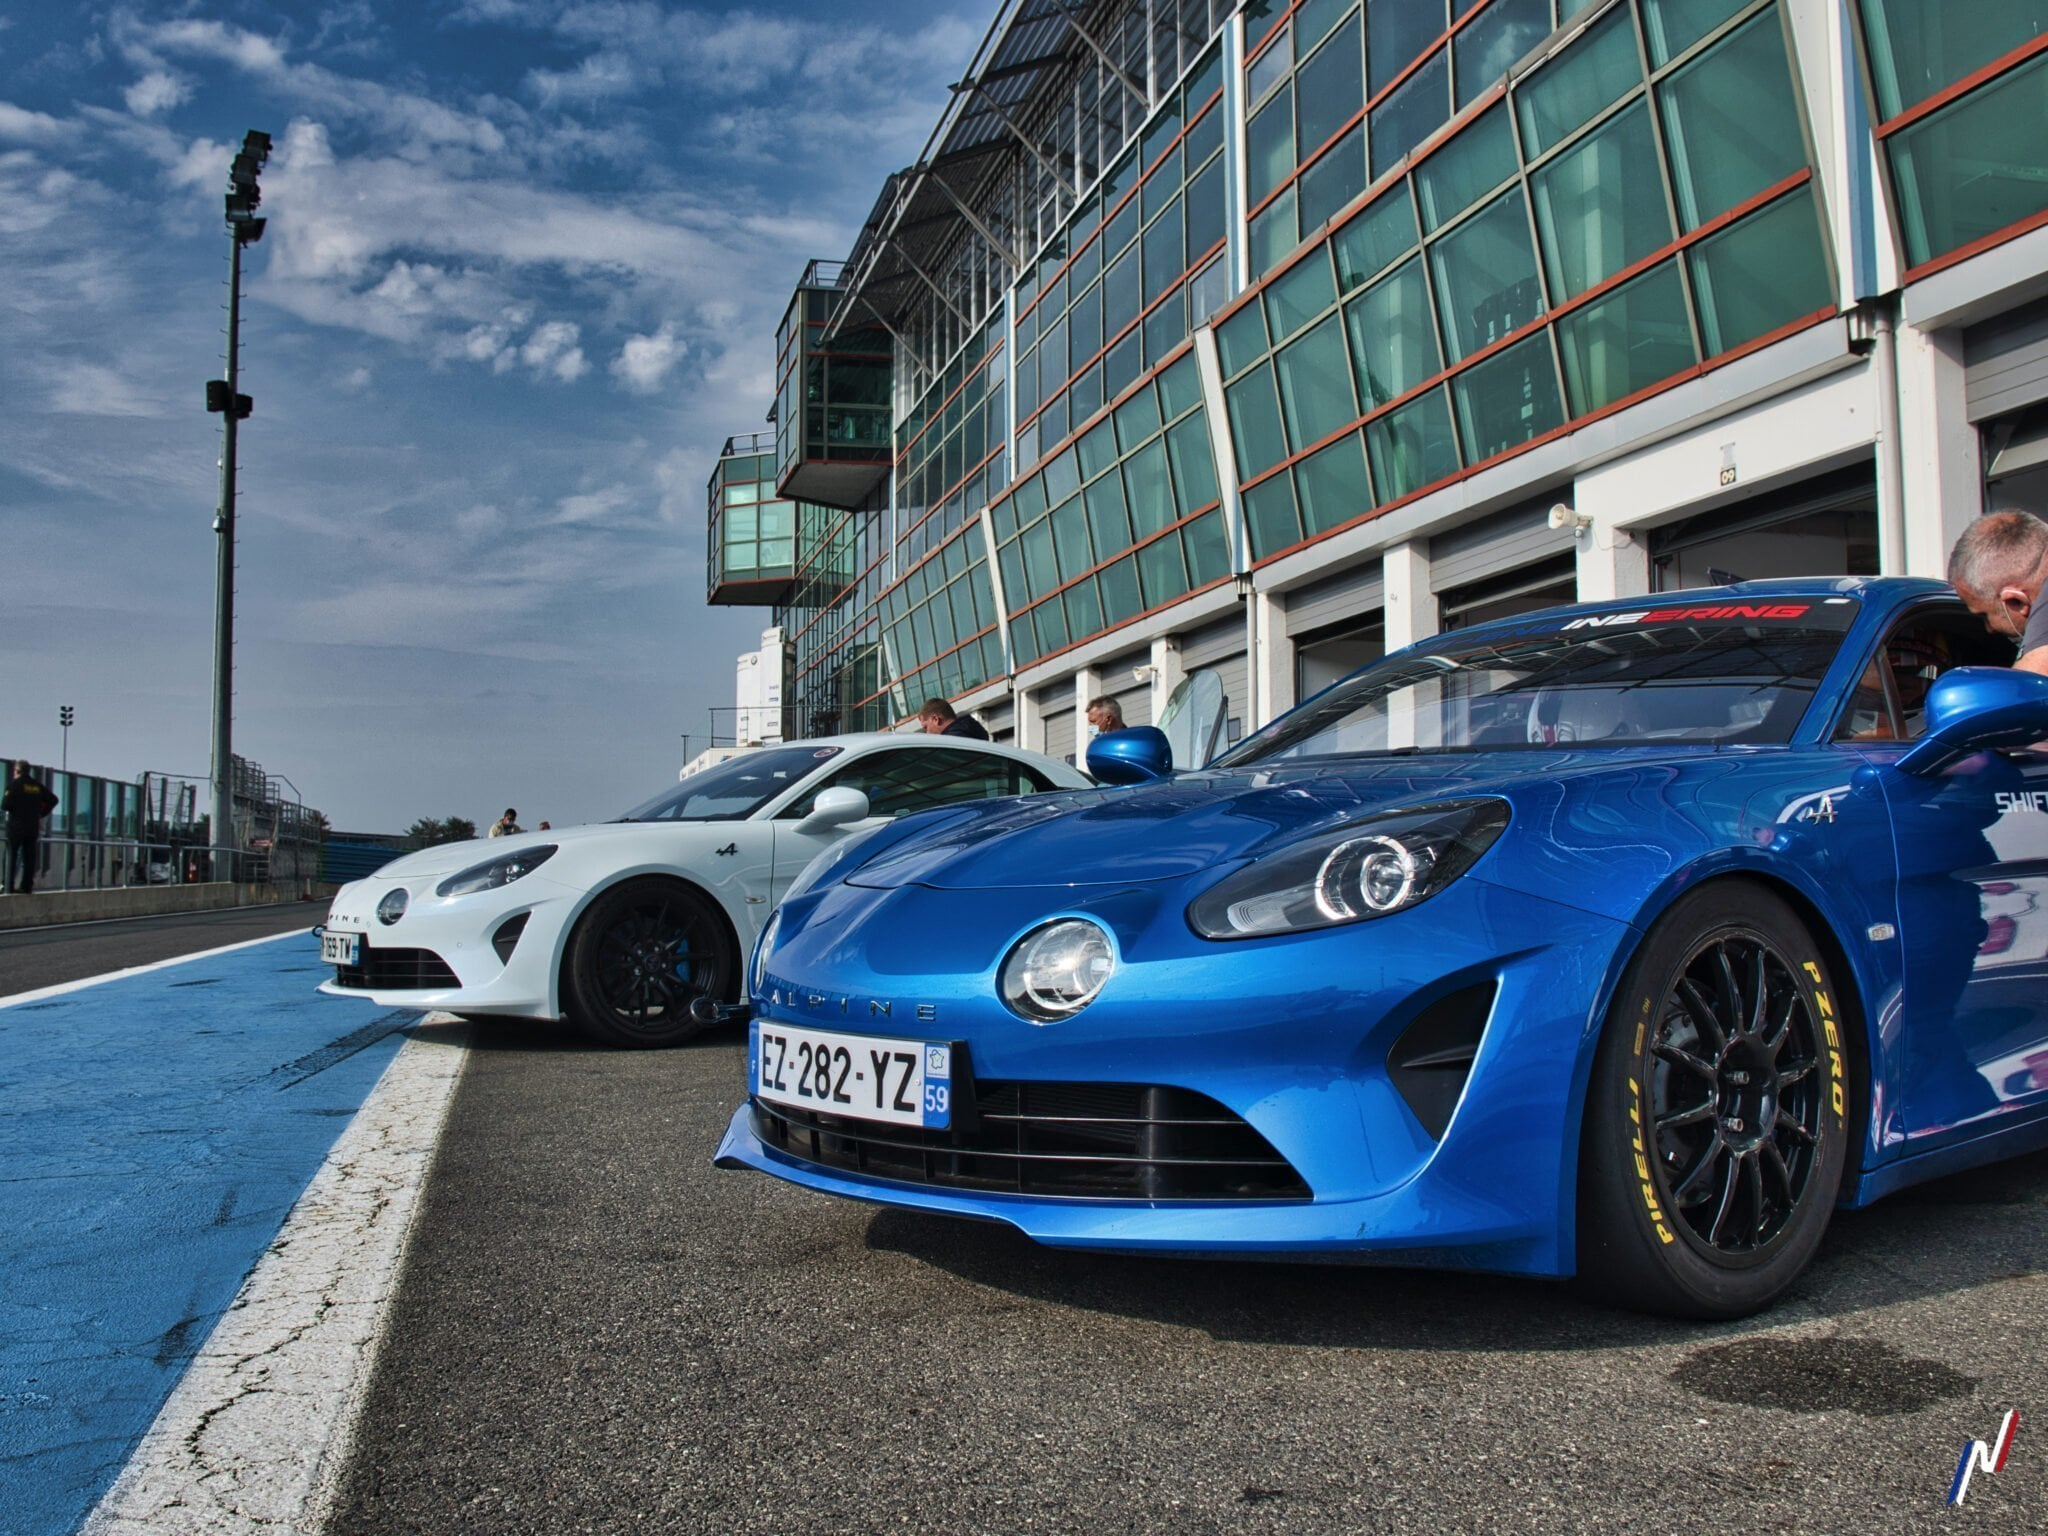 Motorsport Mag Track Day Magny Cours Alpine A110  P1100839 Alpine Planet | Track Day Motorsport 2020 : Magny-Cours, des Alpine et du fun !